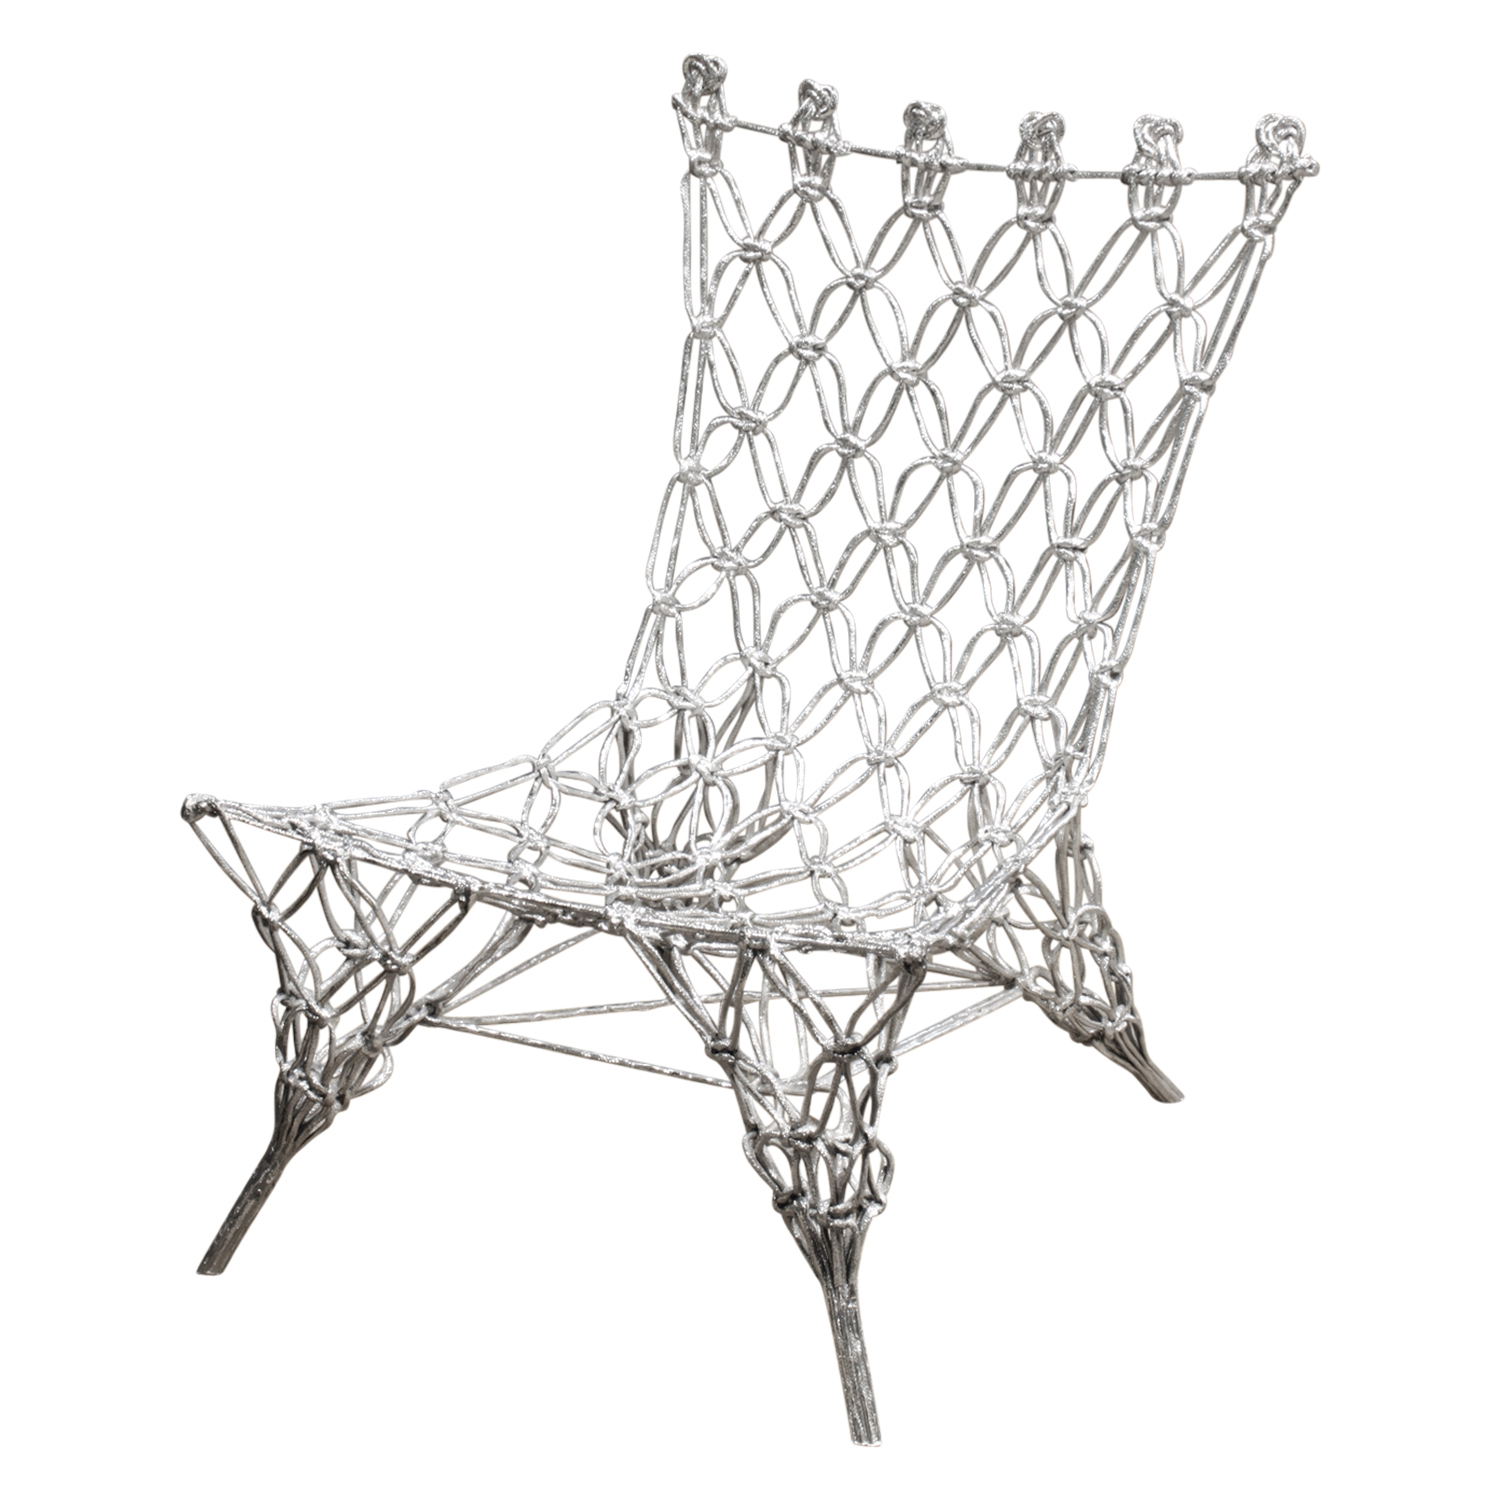 Wanders 65 knotted rope chrome loungechair97 agl.jpg